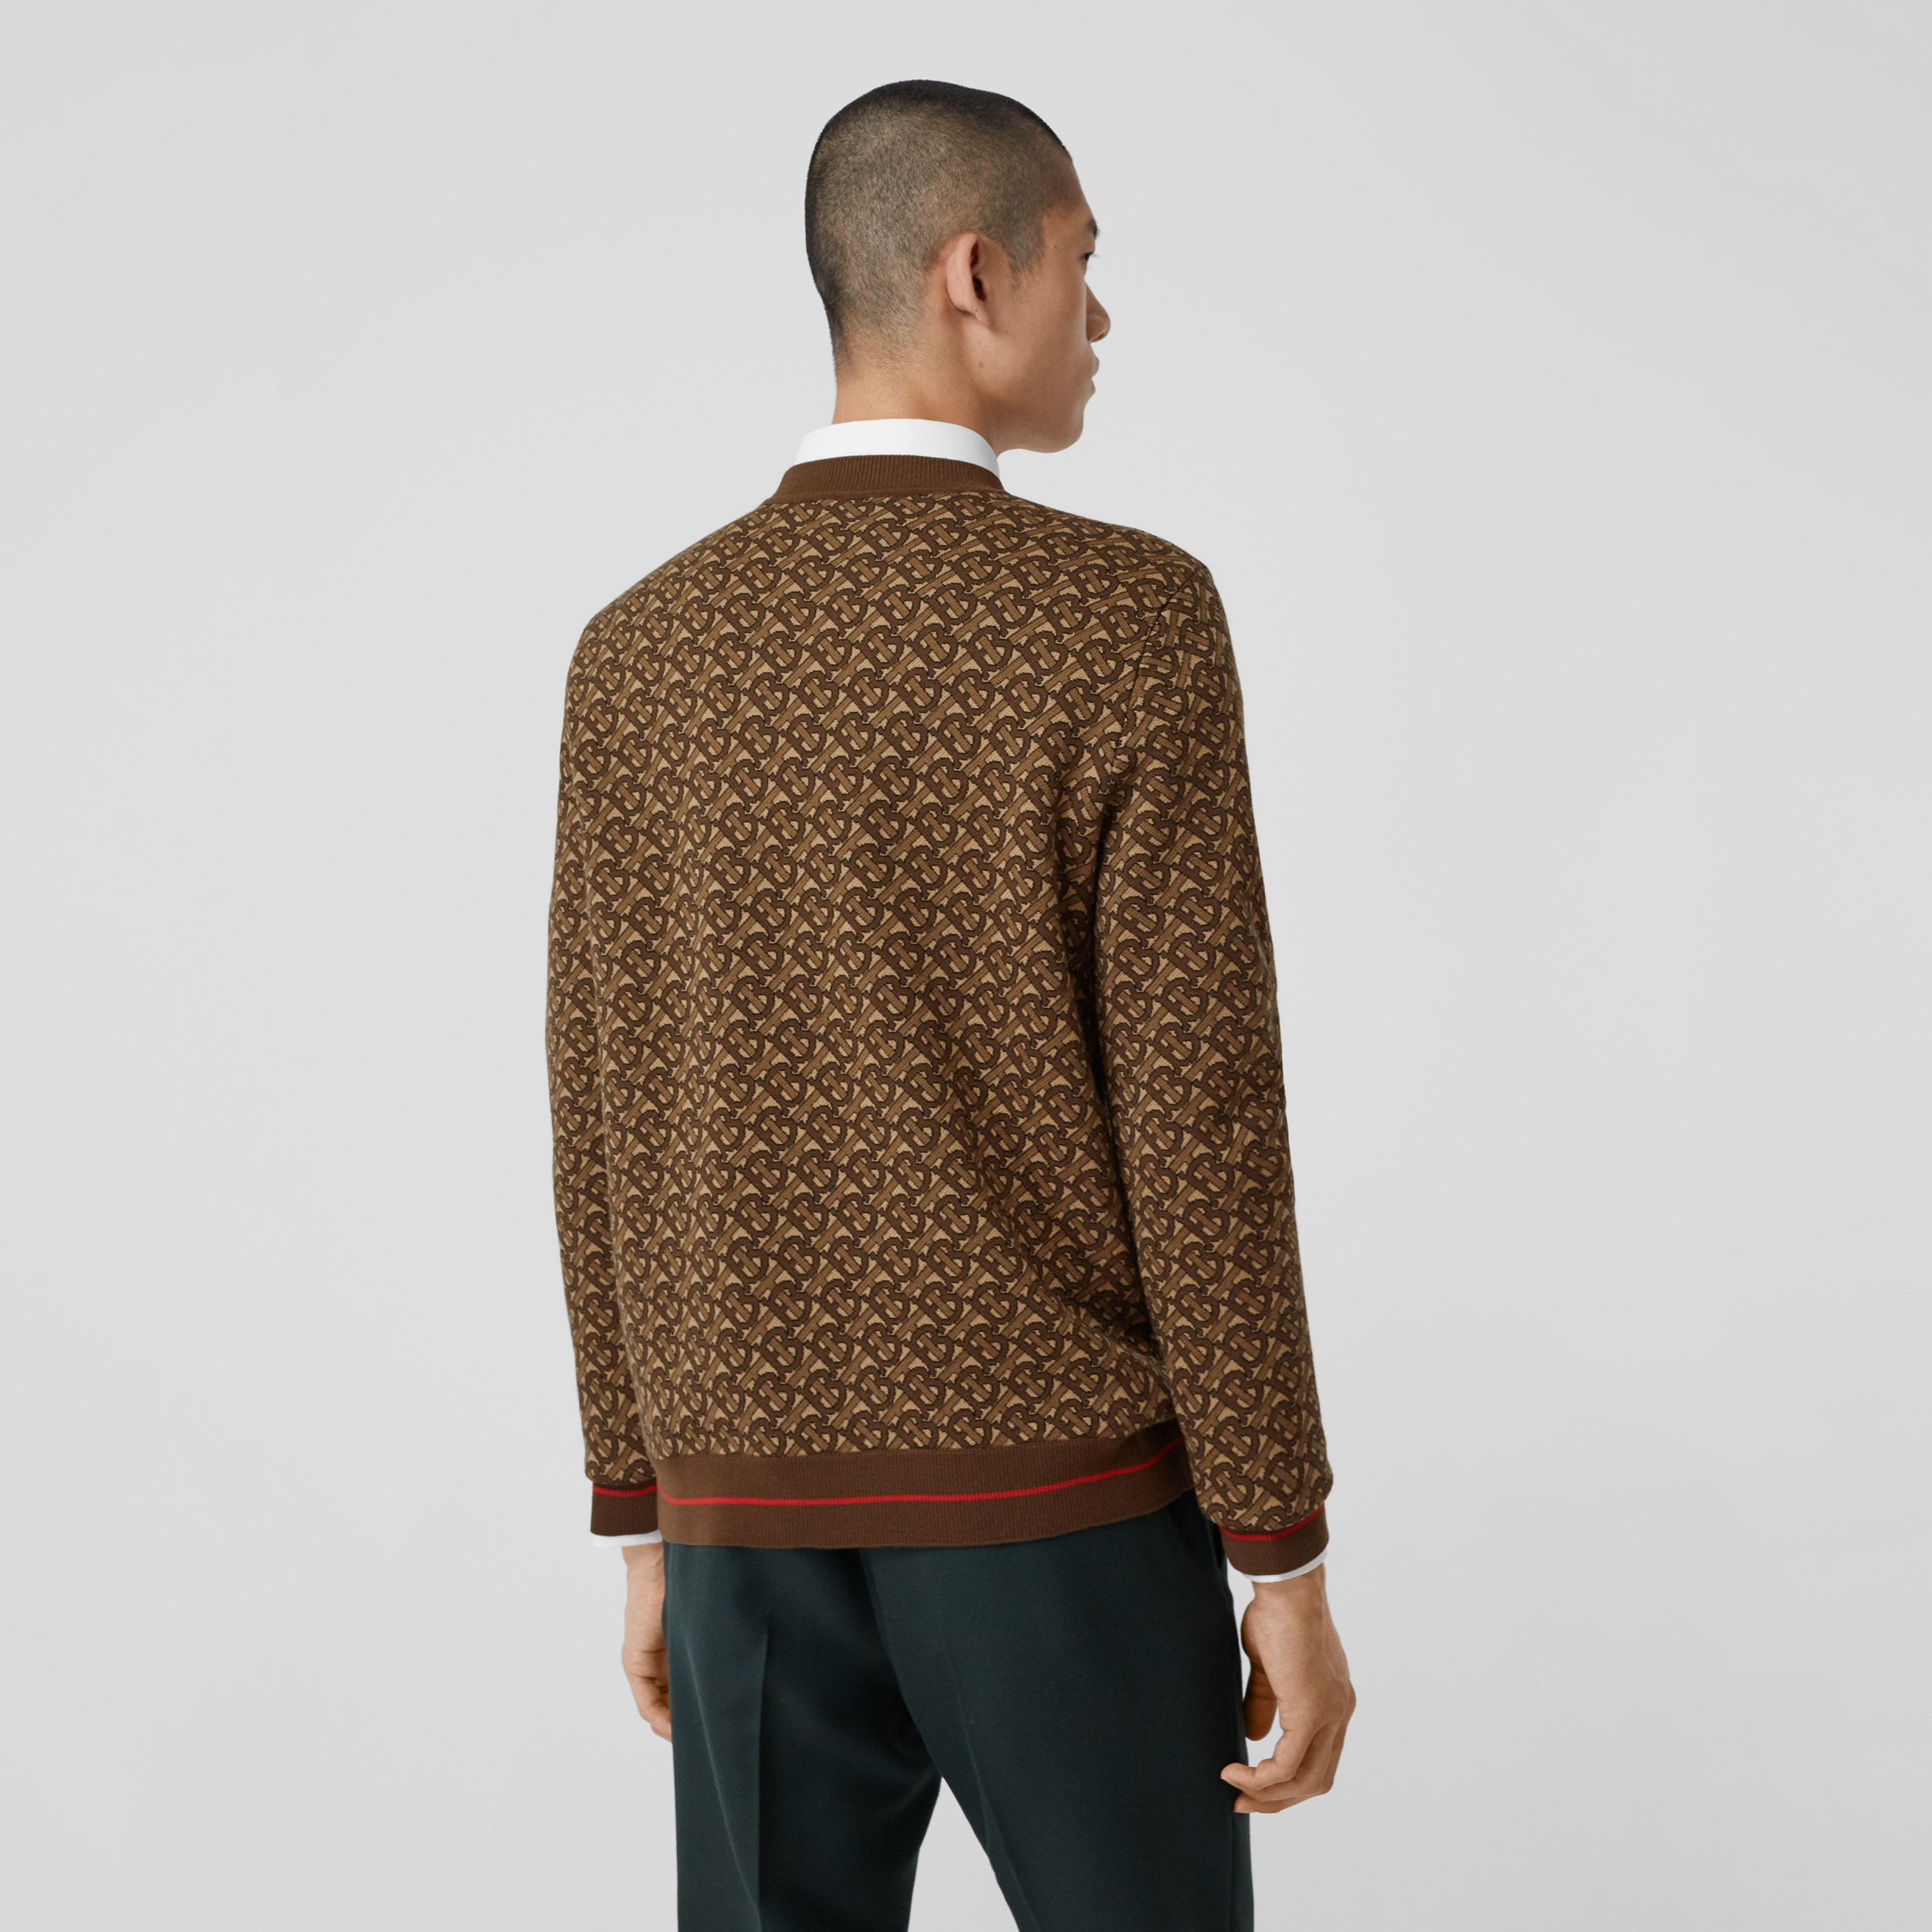 Monogram Merino Wool Jacquard Sweater in Bridle Brown - Men | Burberry Canada - 3